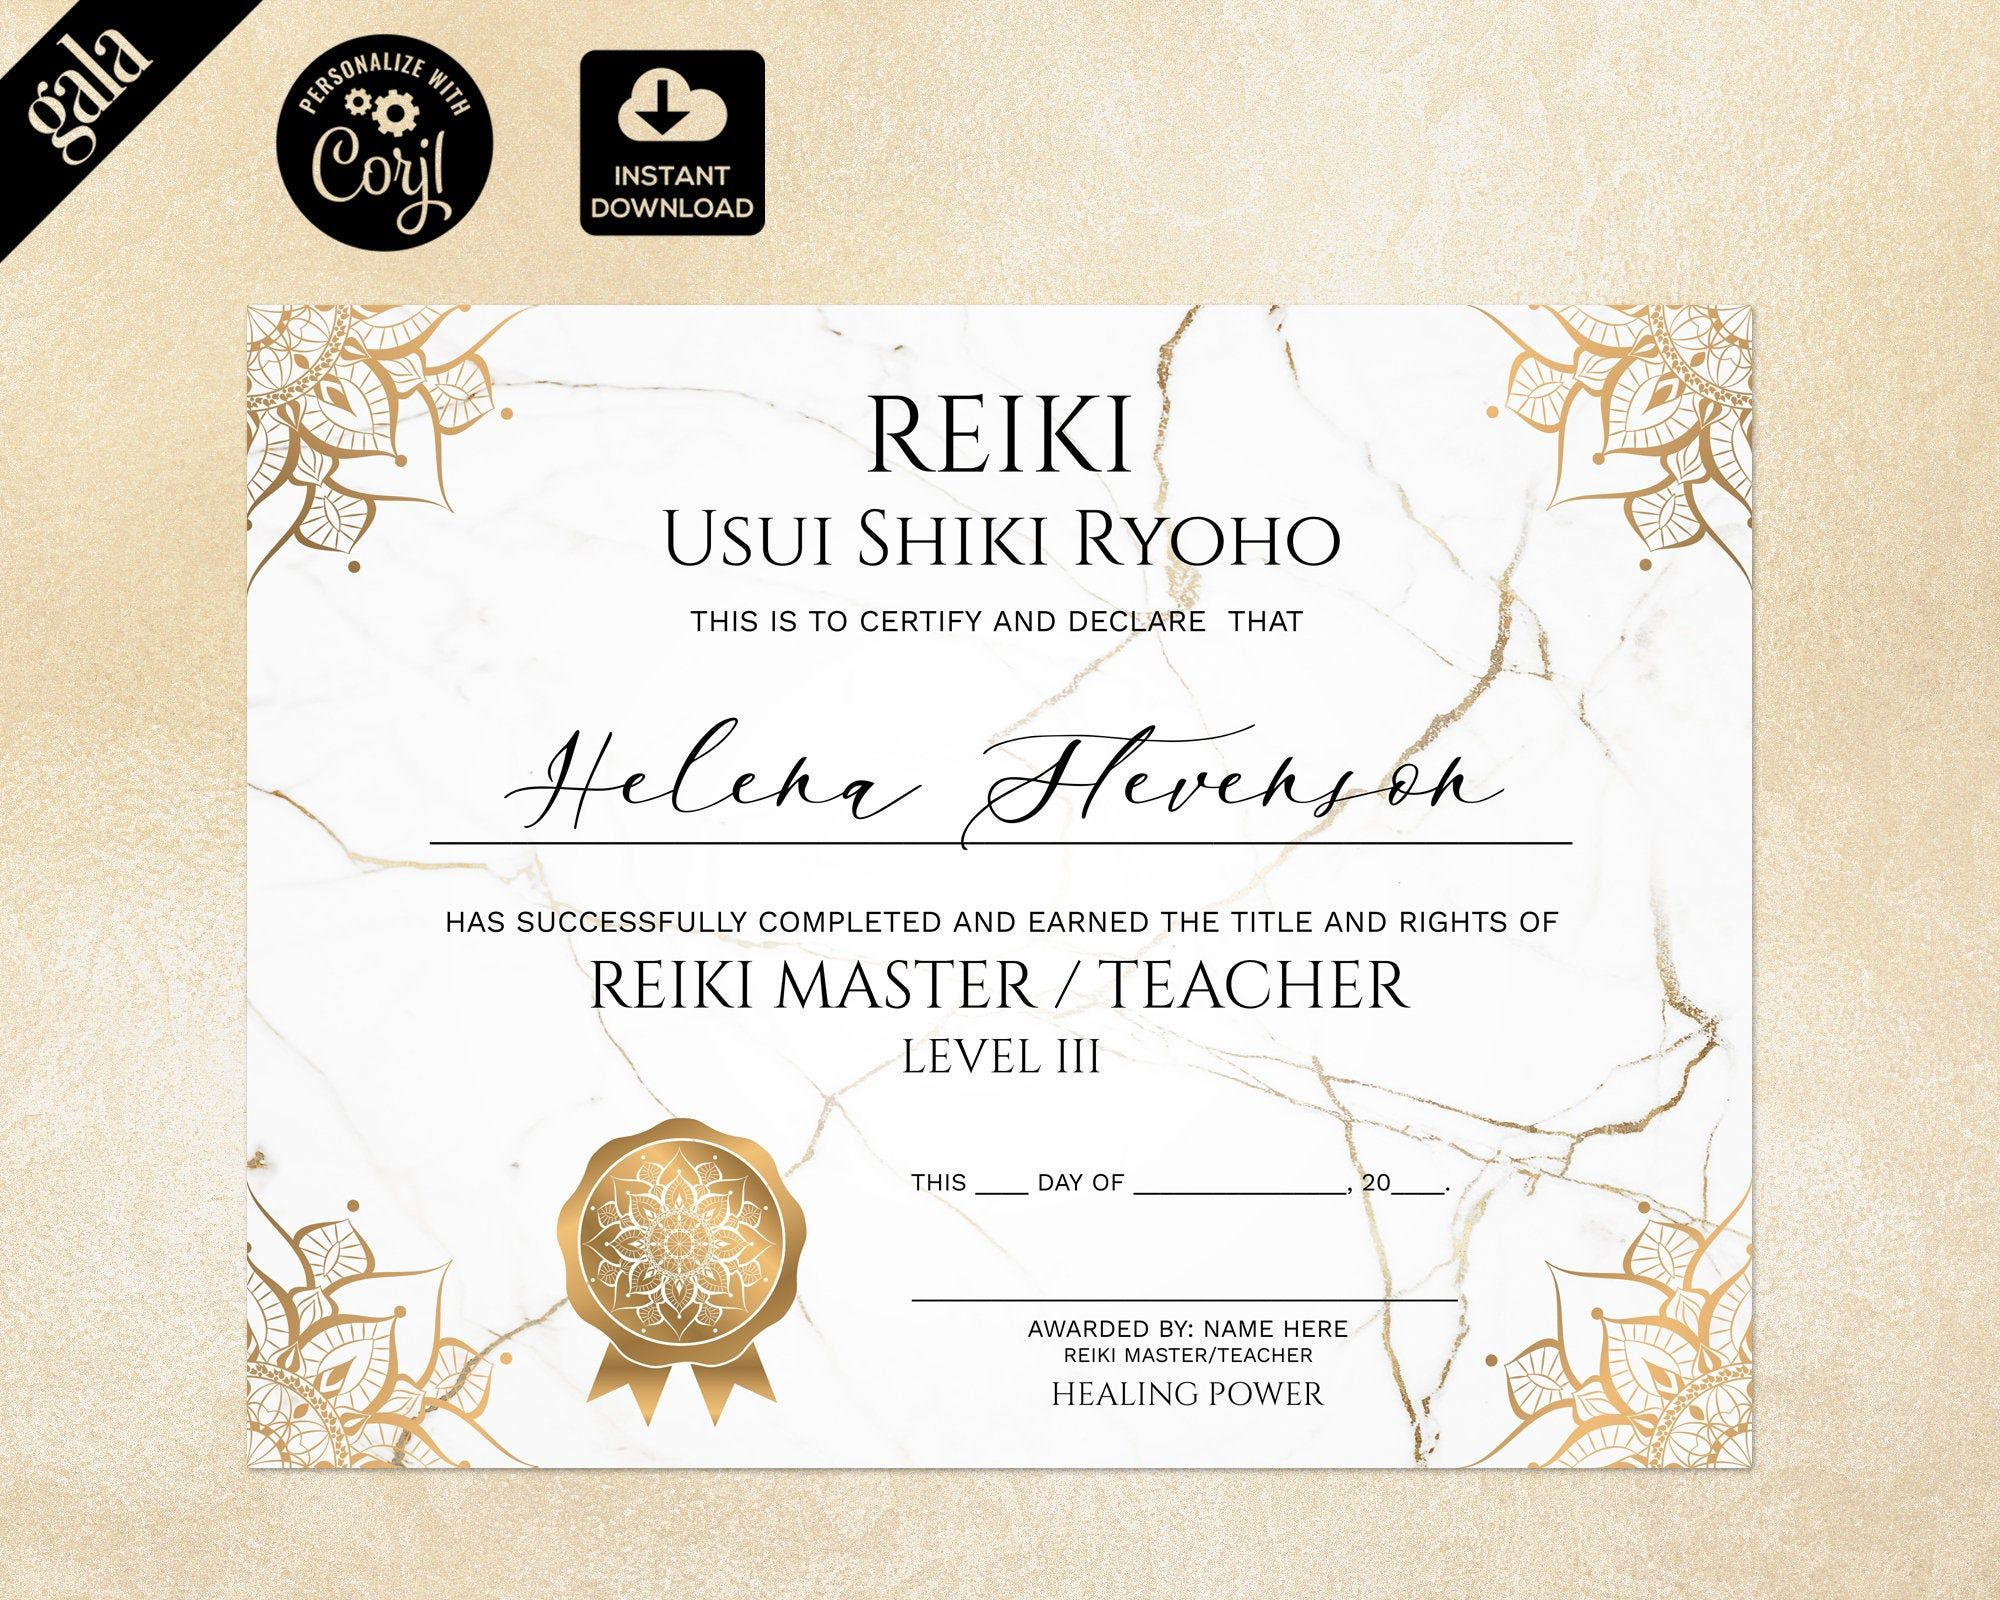 Reiki Certificate Template Reiki Certificate Printable Yoga Etsy In 2021 Soap Labels Template Certificate Templates Custom Soap Labels Reiki certificate template free download